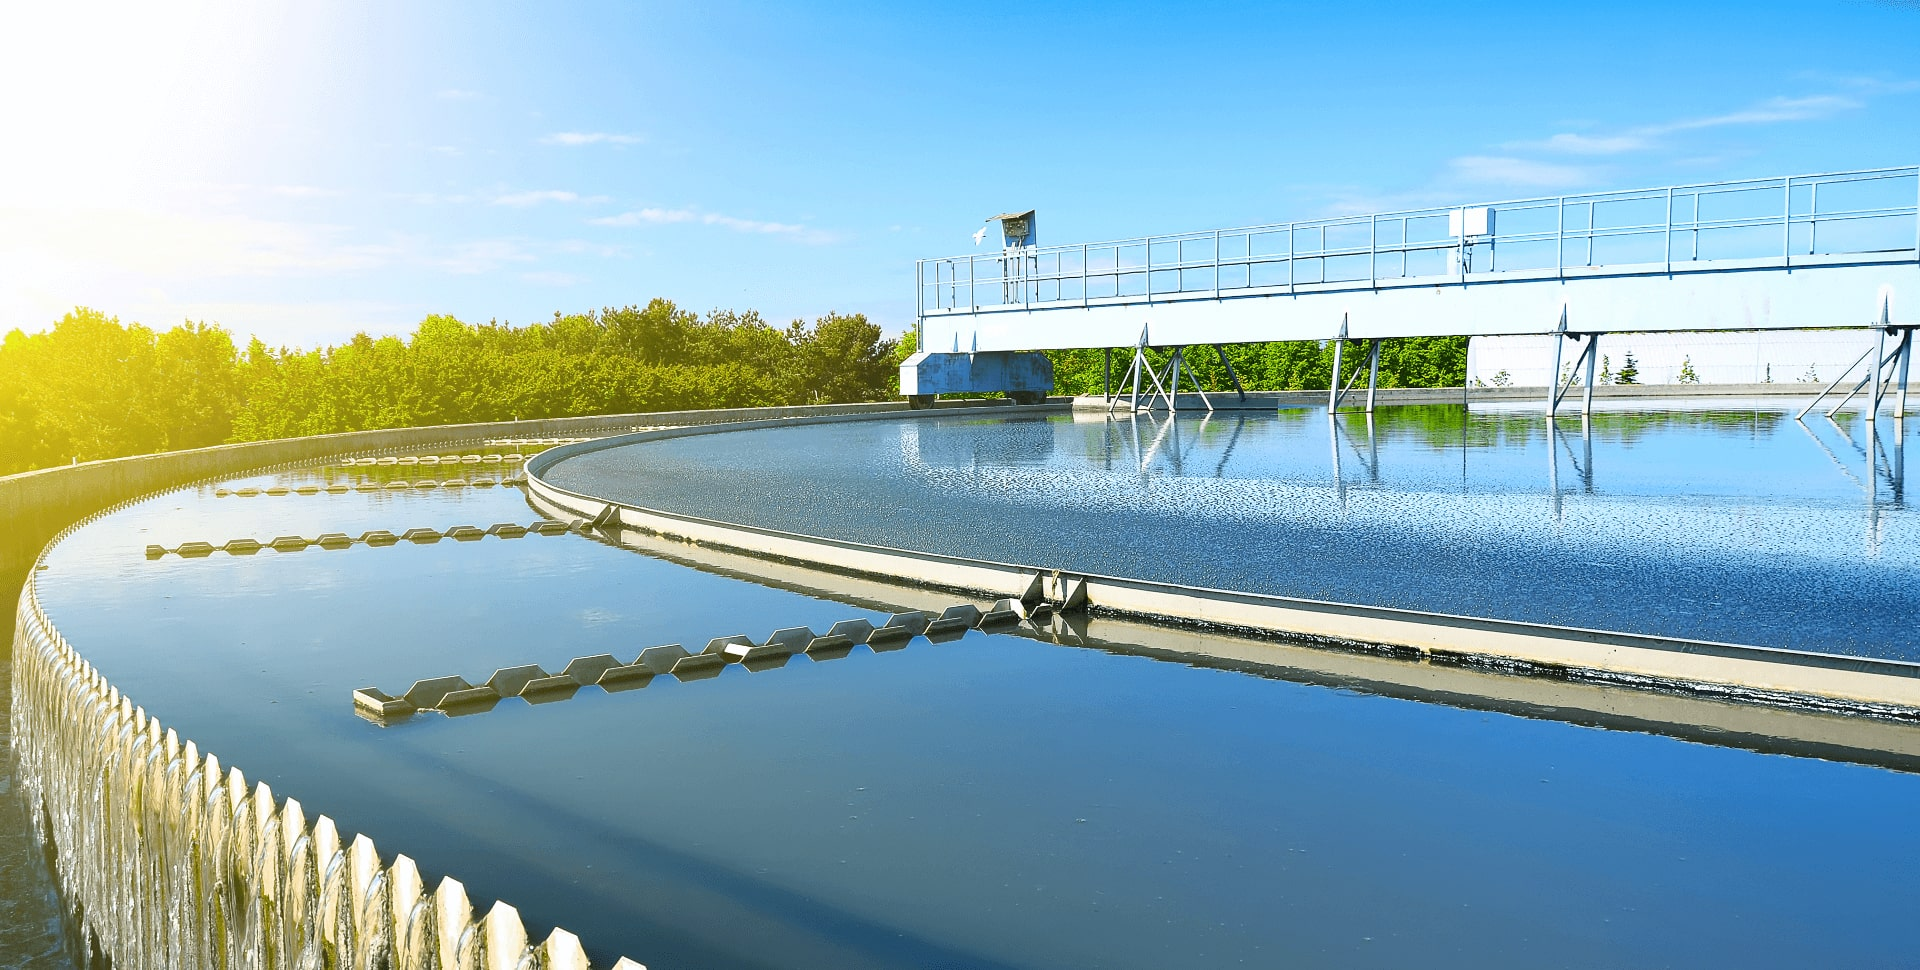 water treatment plant construction company, water infrastructure companies in india